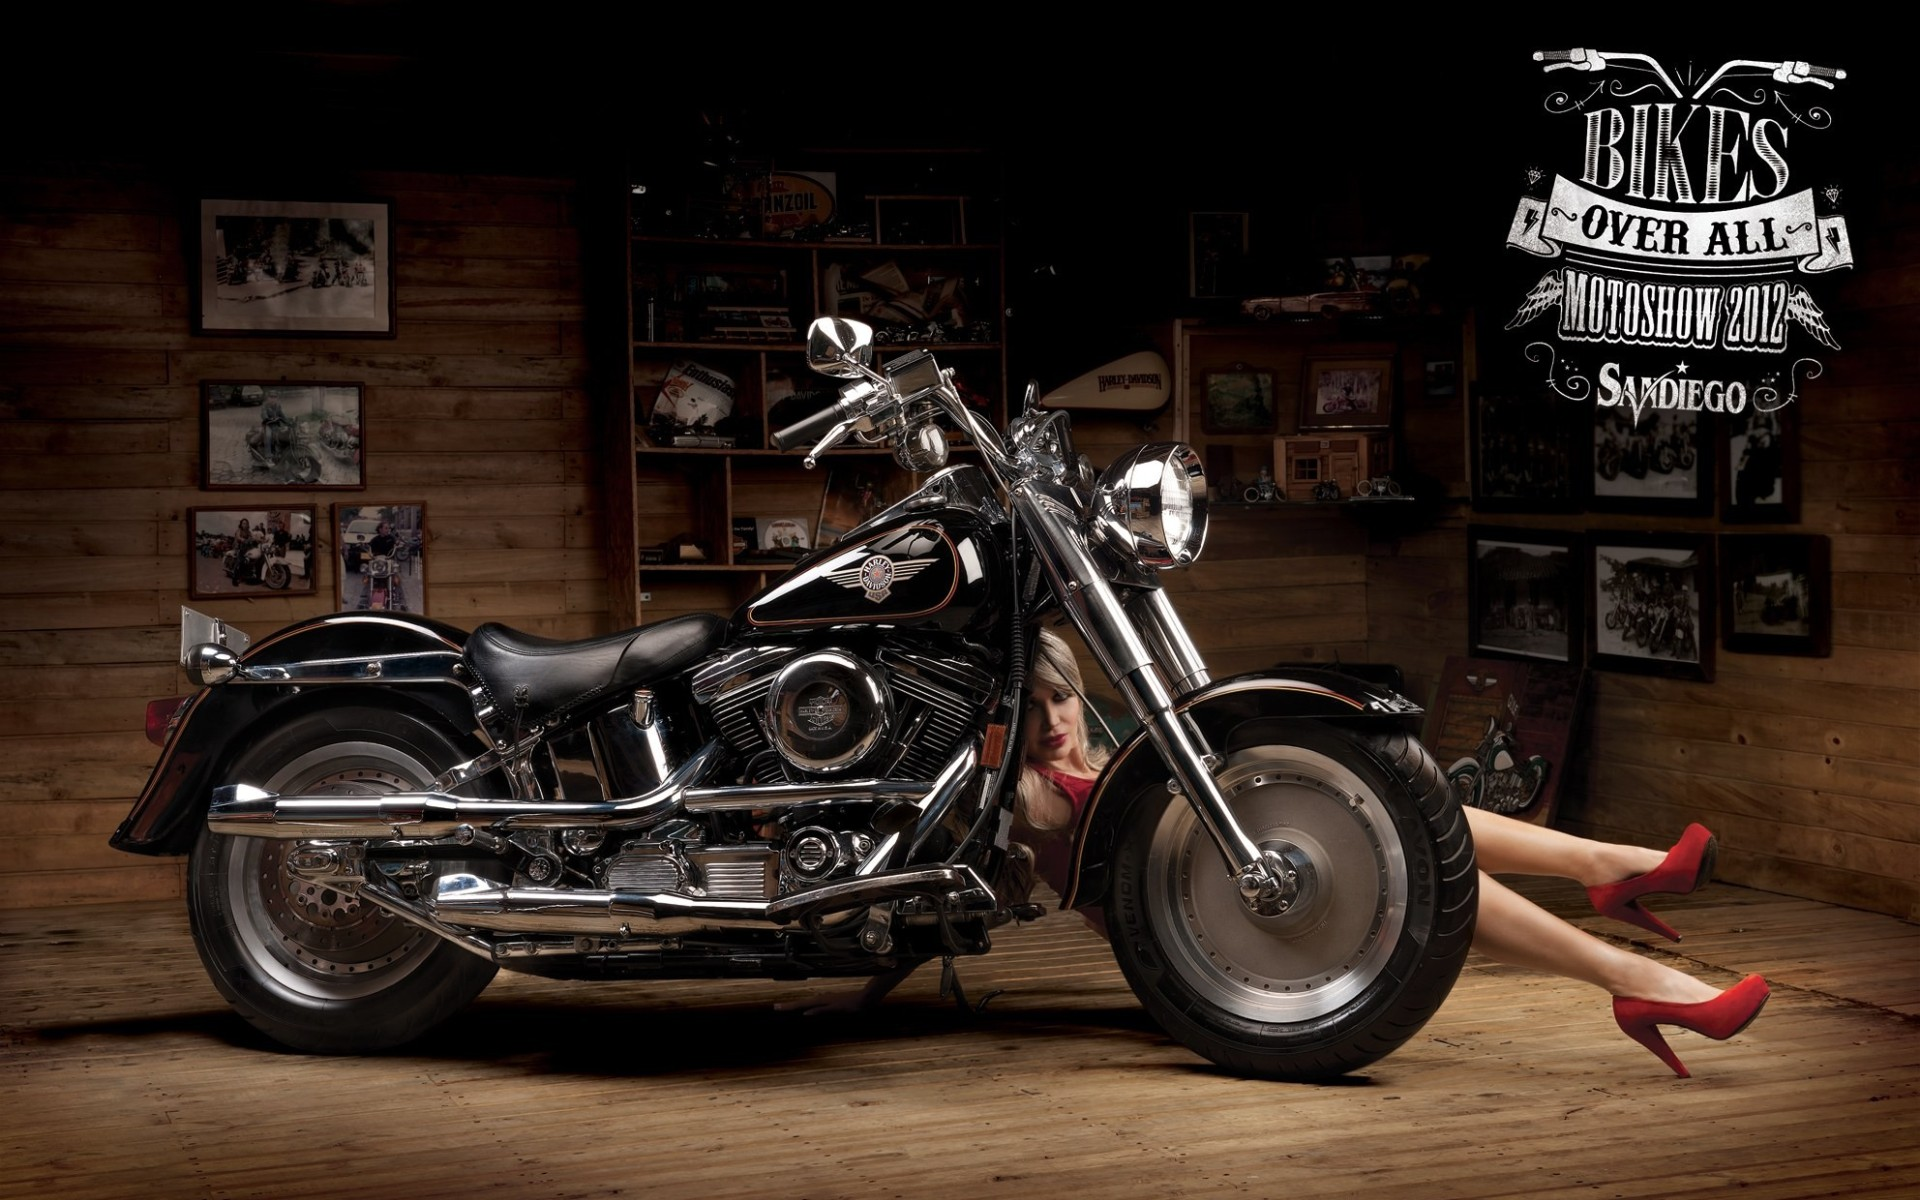 Download Harley Davidson 883 2048 X 2048 Wallpapers: Harley Davidson Wallpaper Moto Show